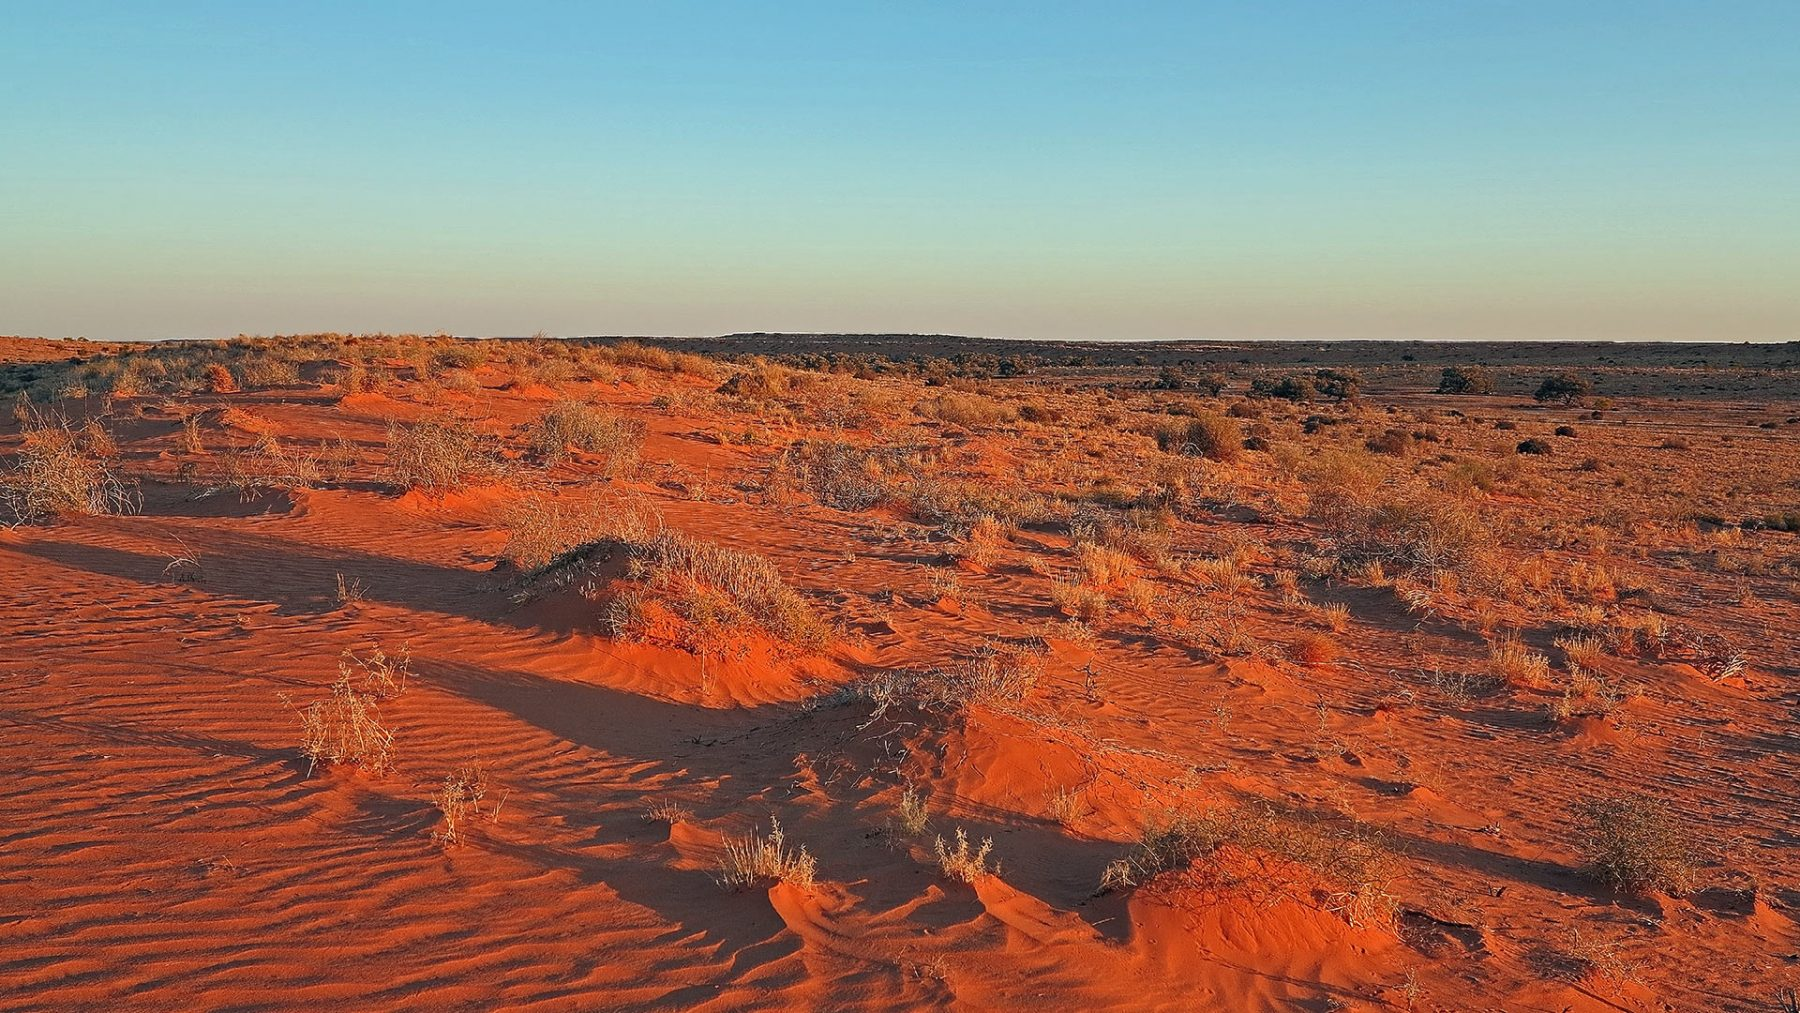 The red dunes of the Simpson Desert.